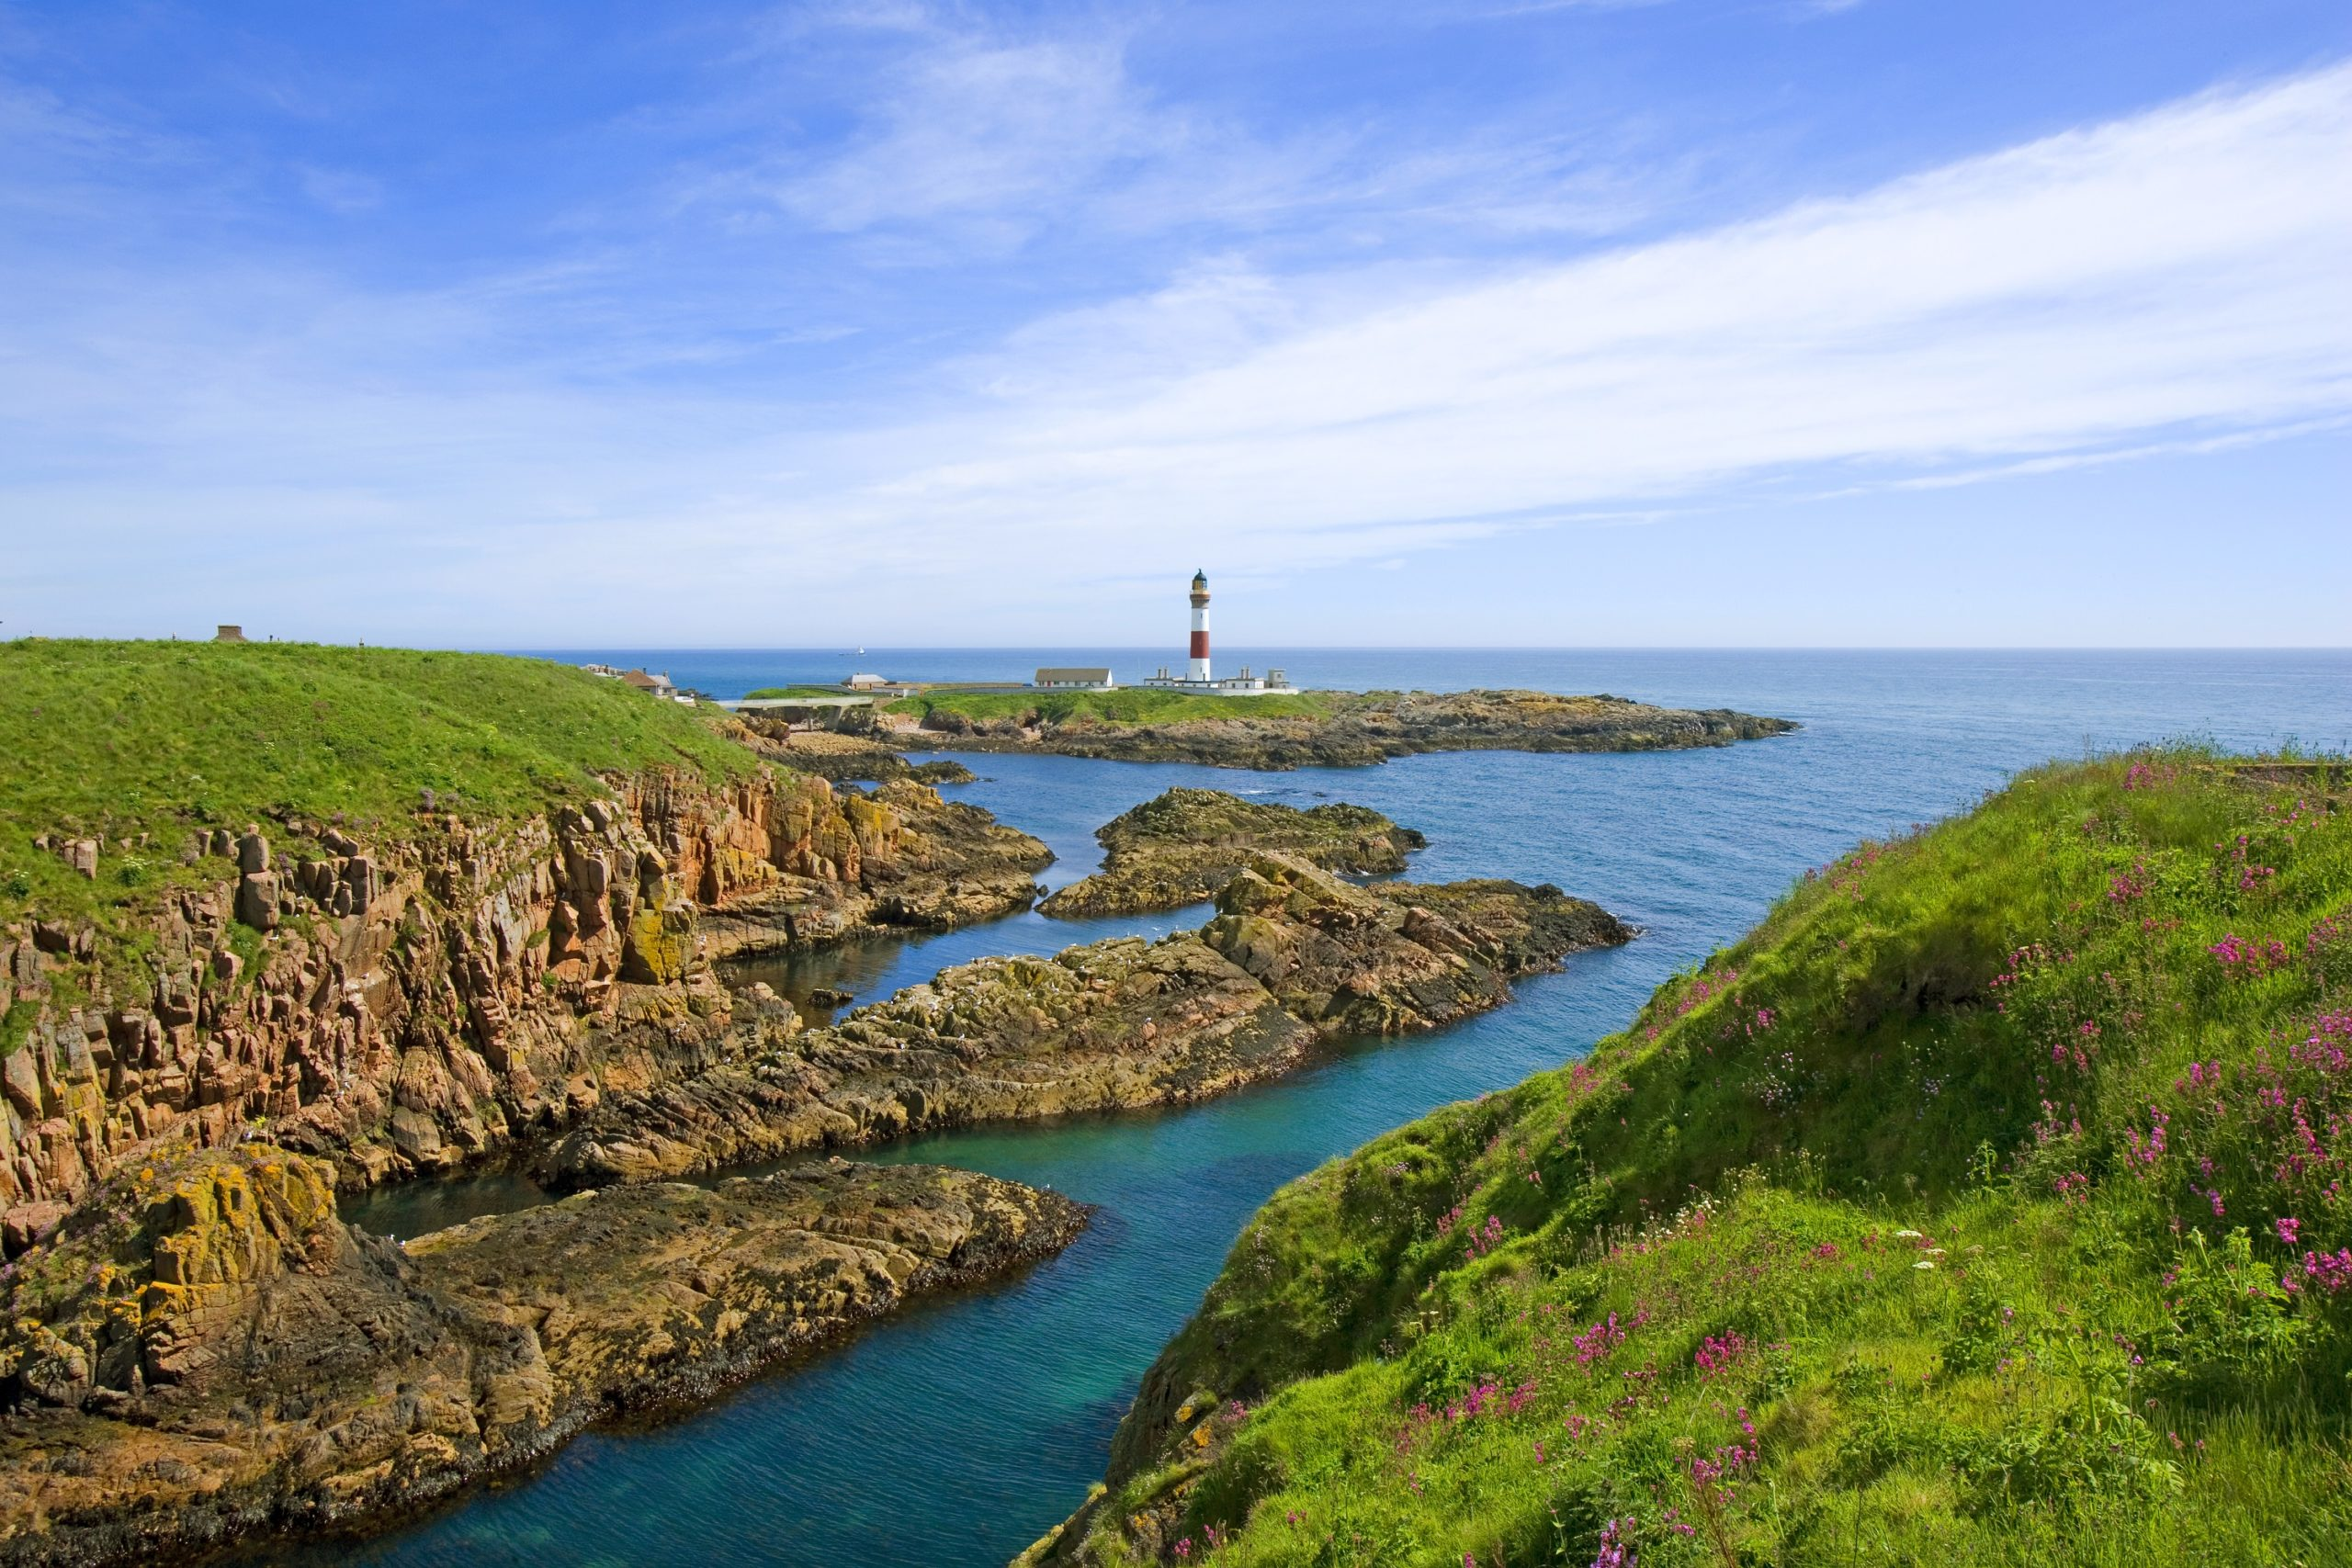 VisitAberdeenshire wants to bring more tourism business to the region